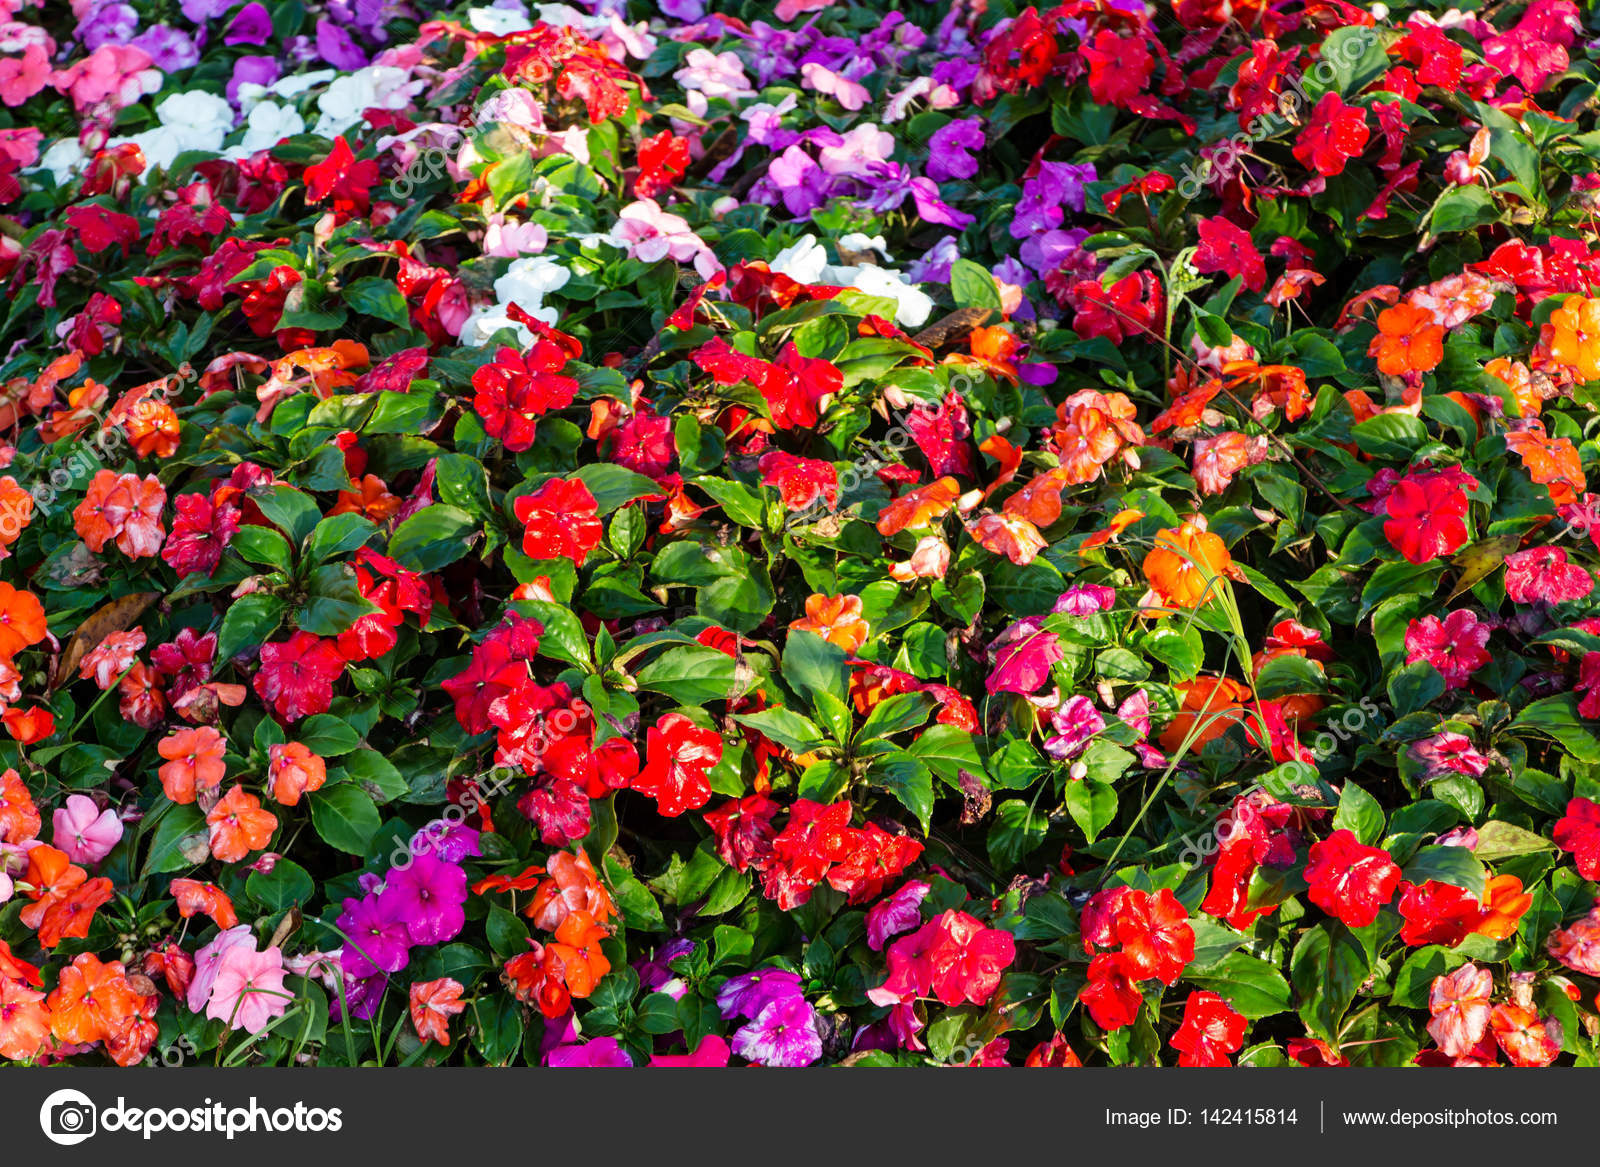 Multicolored impatiens plants blooming profusely in a summer flowers ...